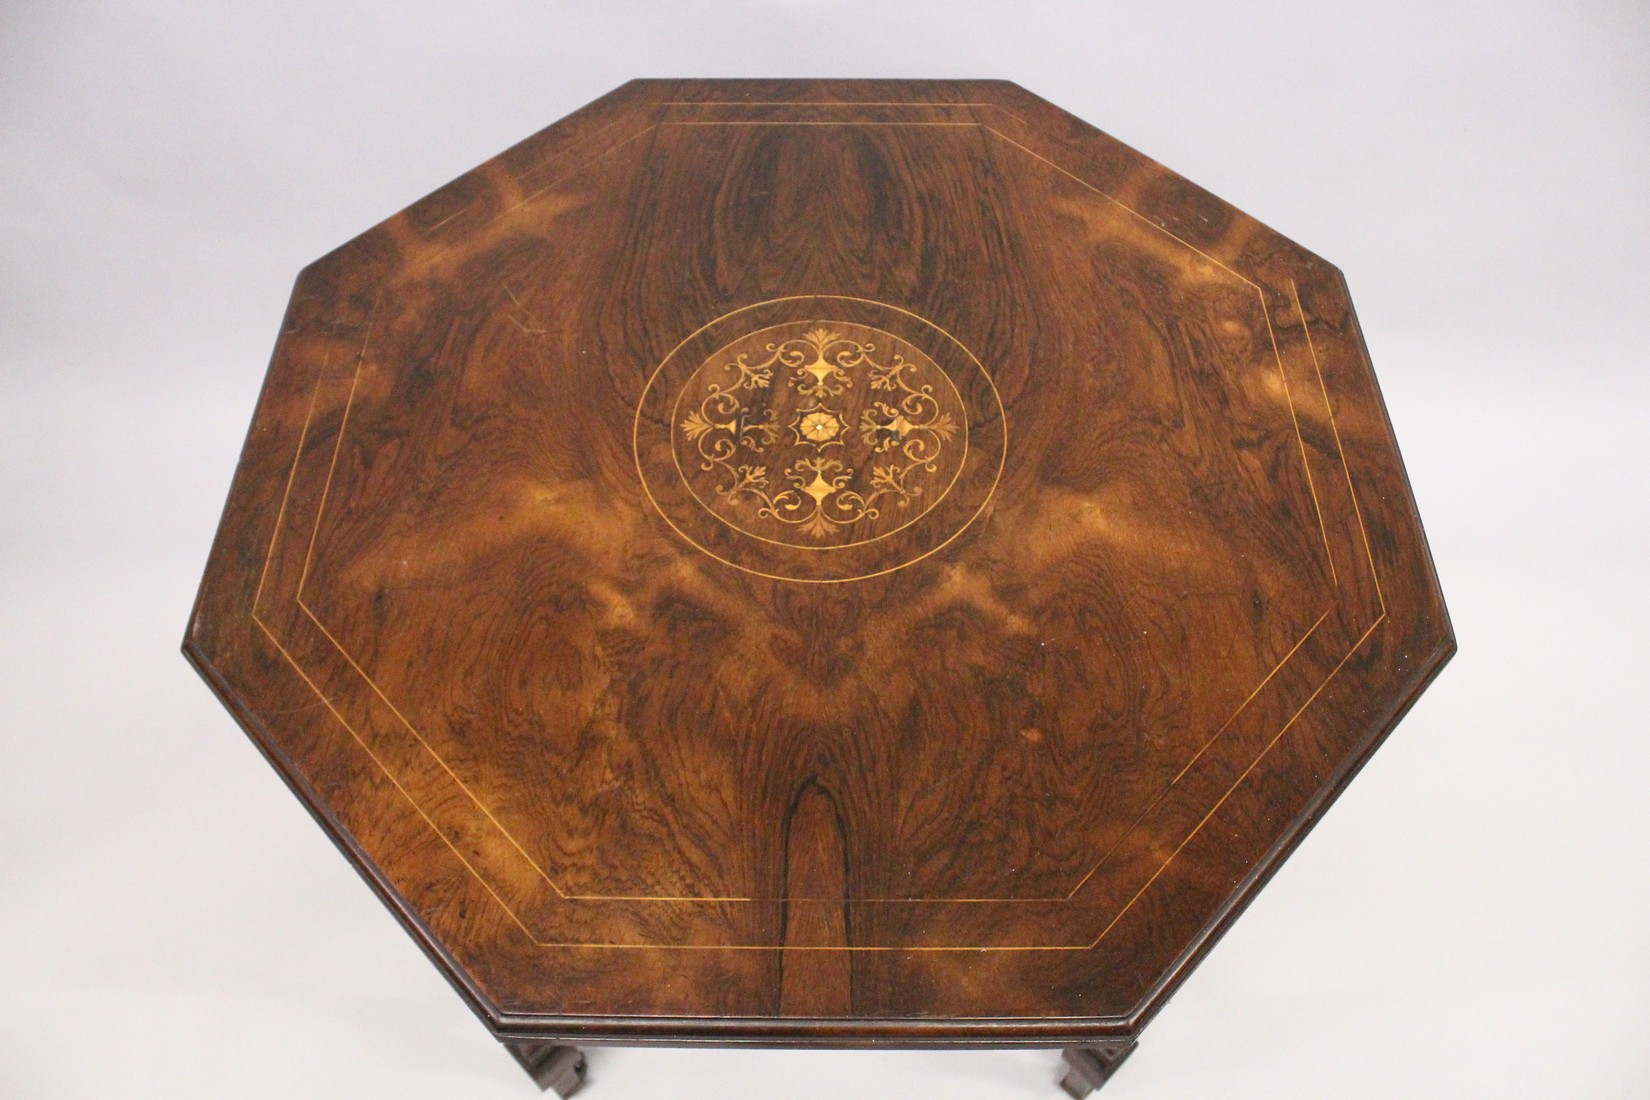 A GOOD VICTORIAN ROSEWOOD OCTAGONAL CENTRE TABLE with inlaid top, tapering legs with casters and - Image 3 of 5